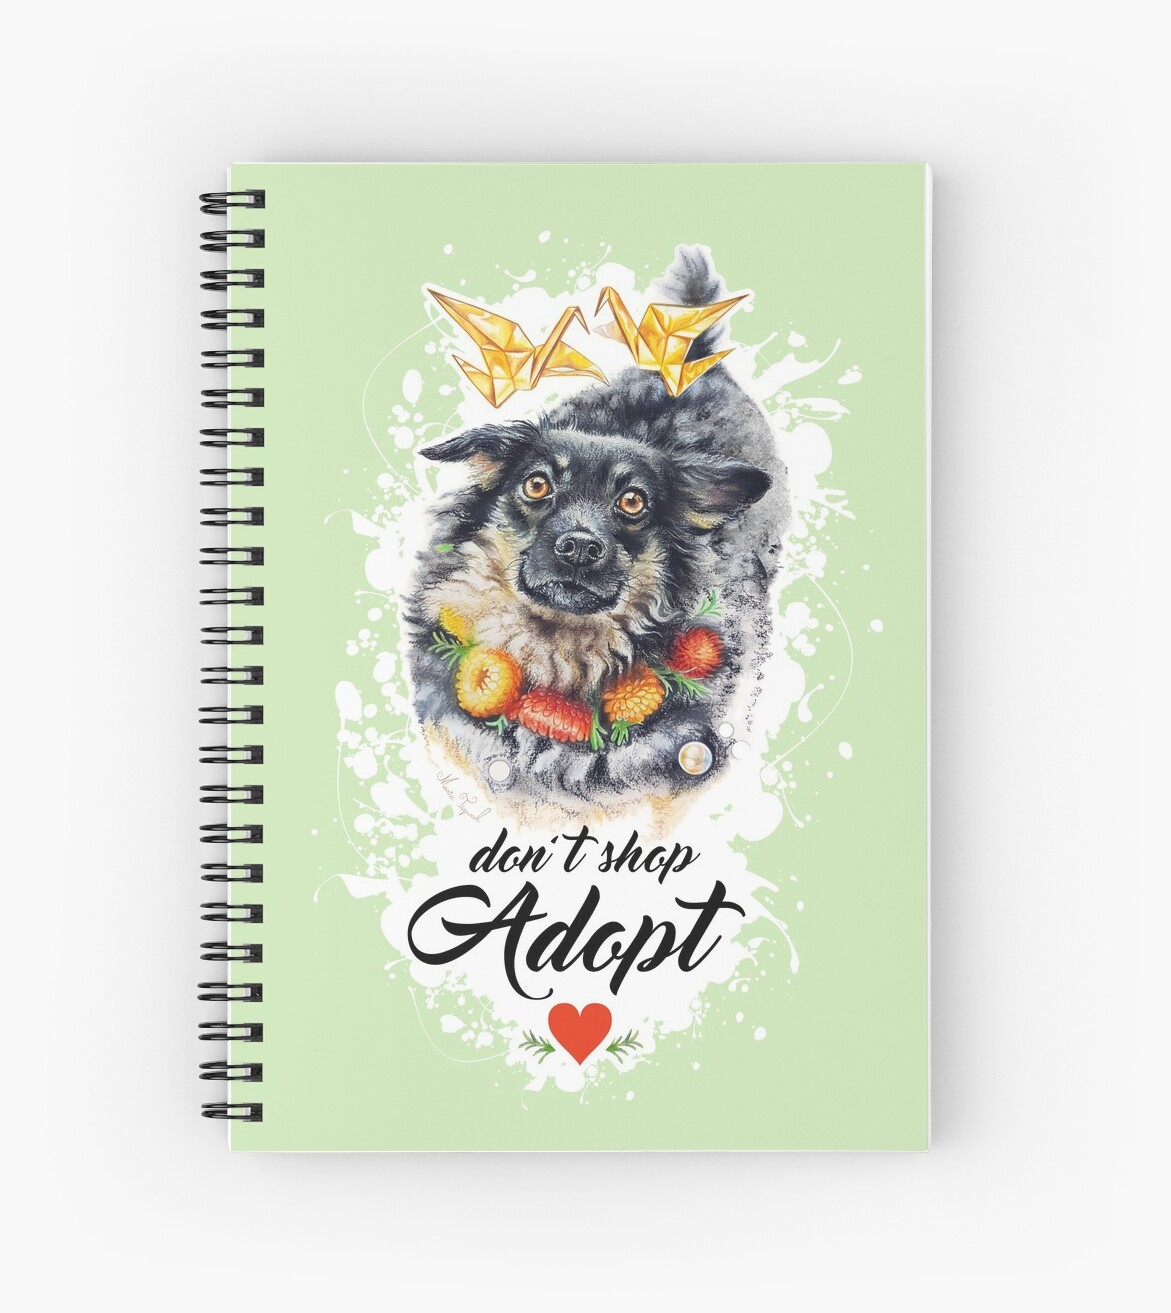 Don't shop, adopt! by Maria Tiqwah by Maria Tiqwah